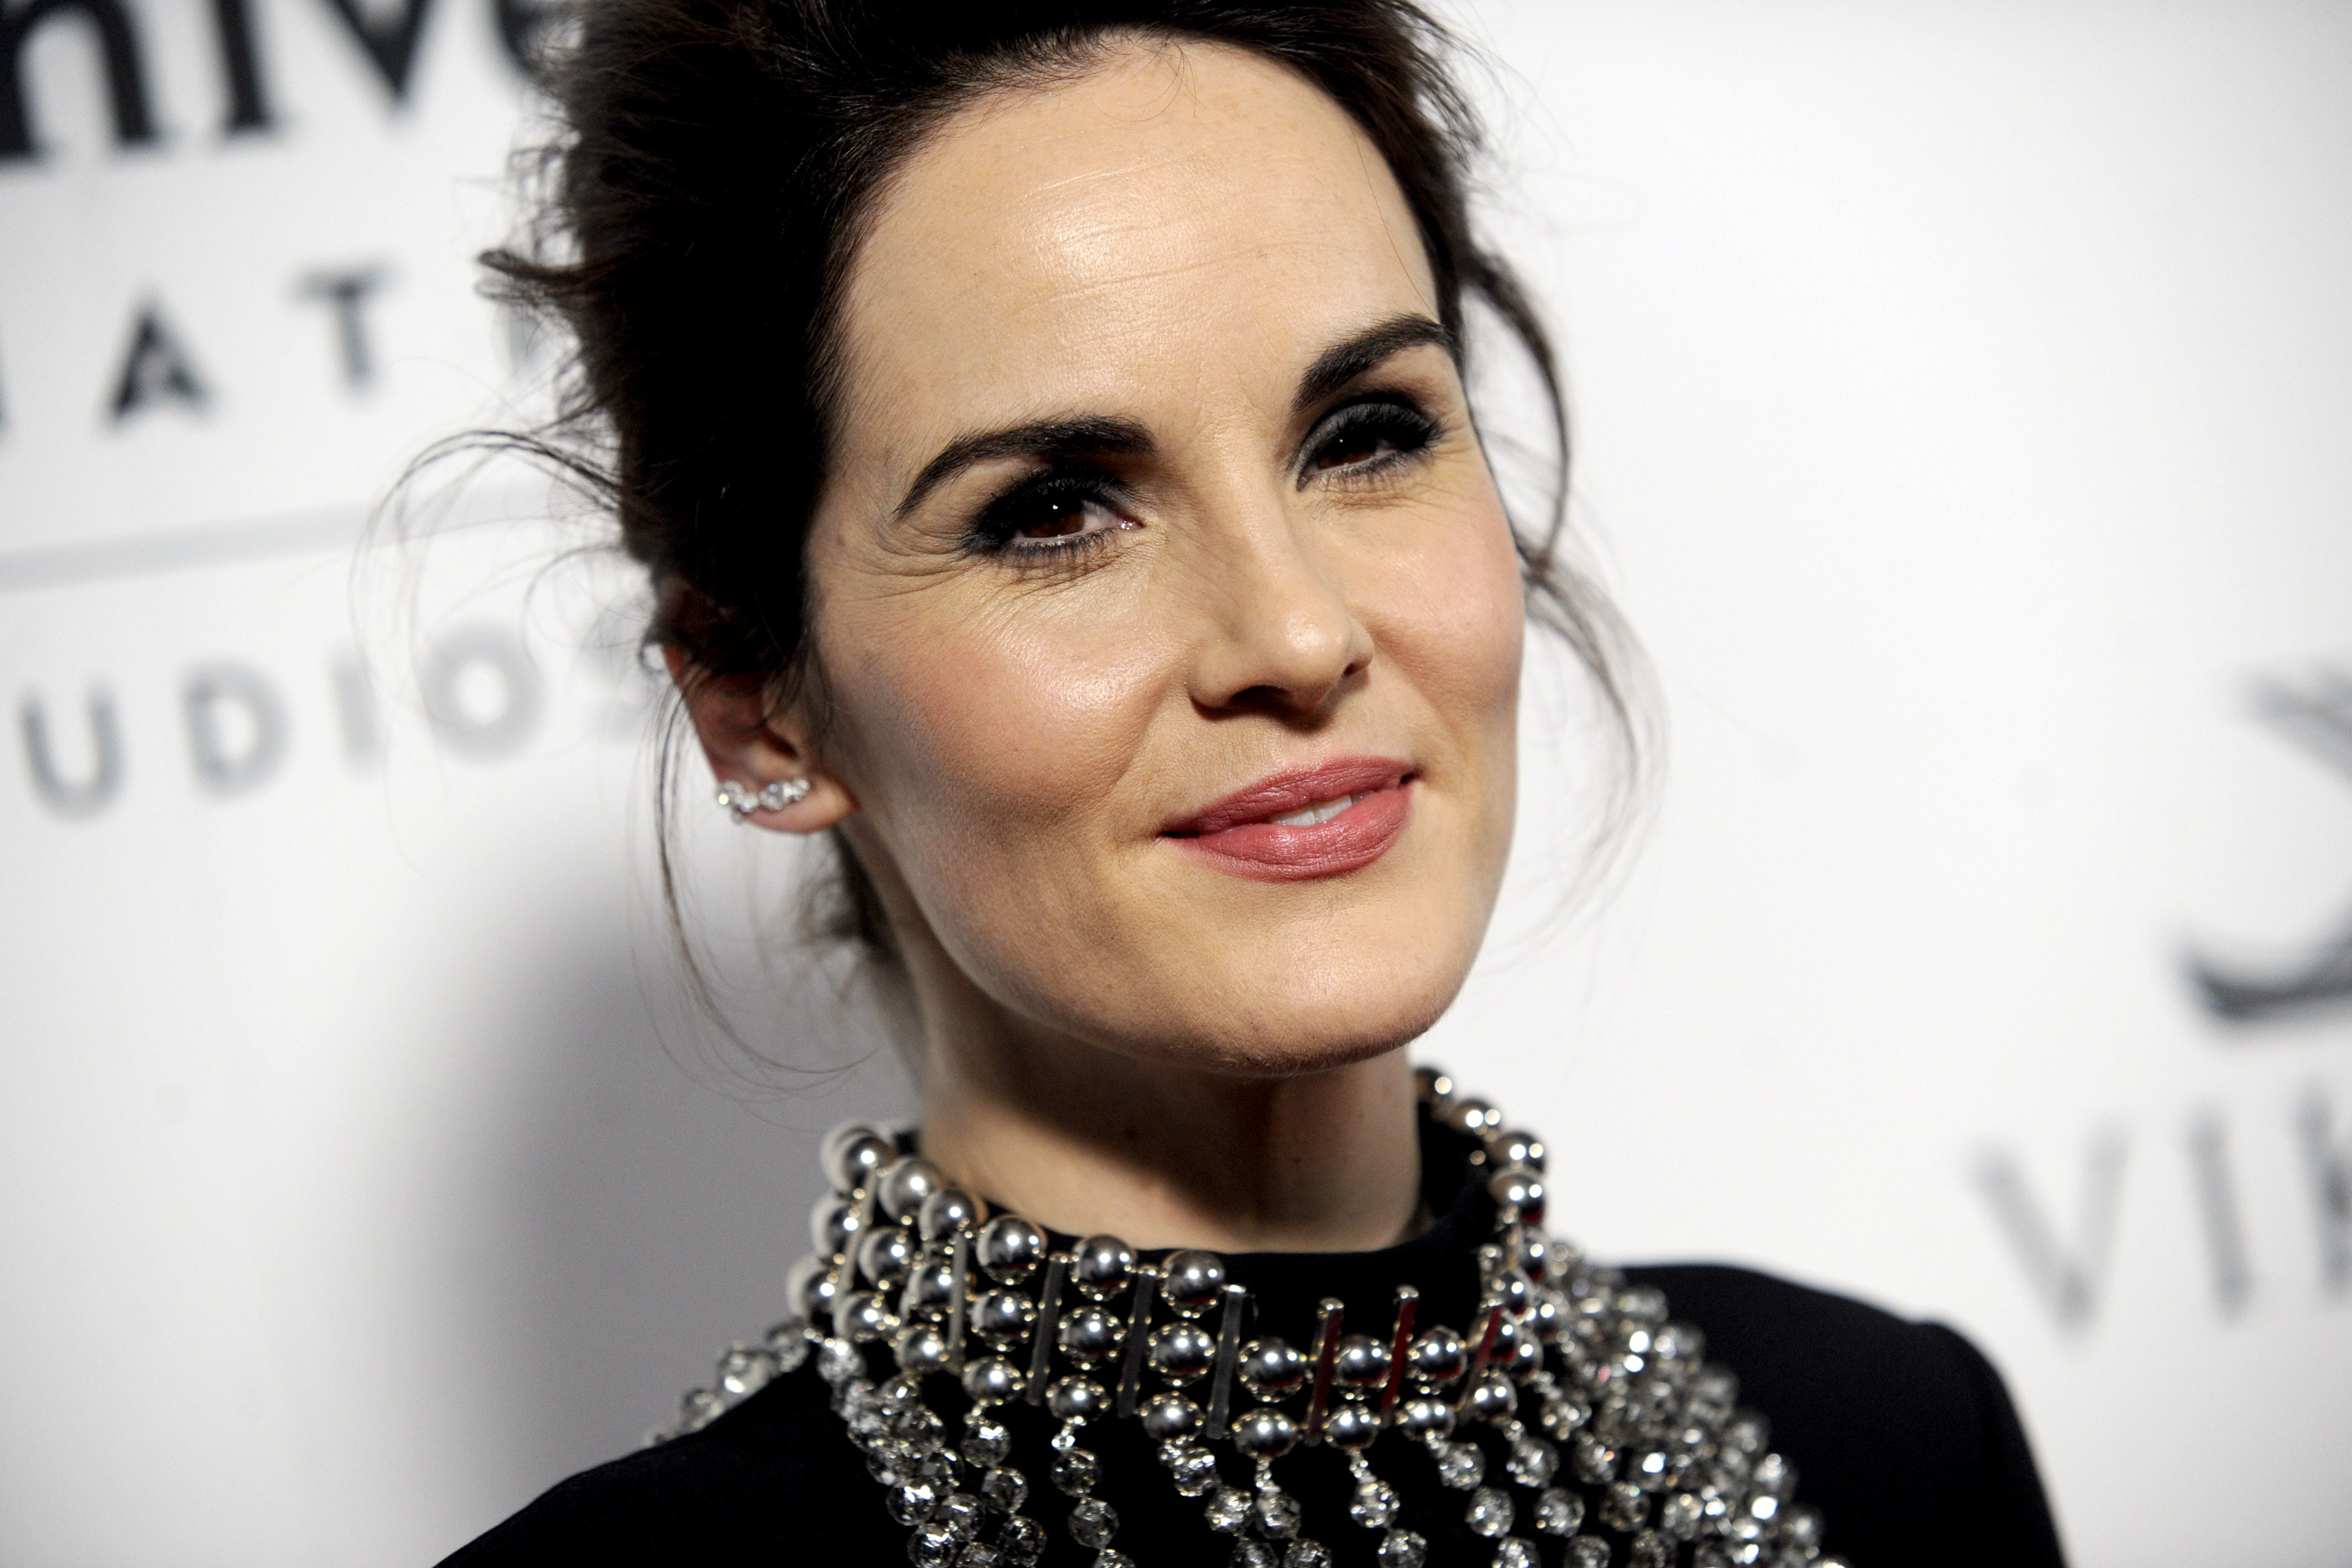 Celebrating her 36th birthday, here are 10 thing you should know about Michelle Dockery! (Photo: WENN)